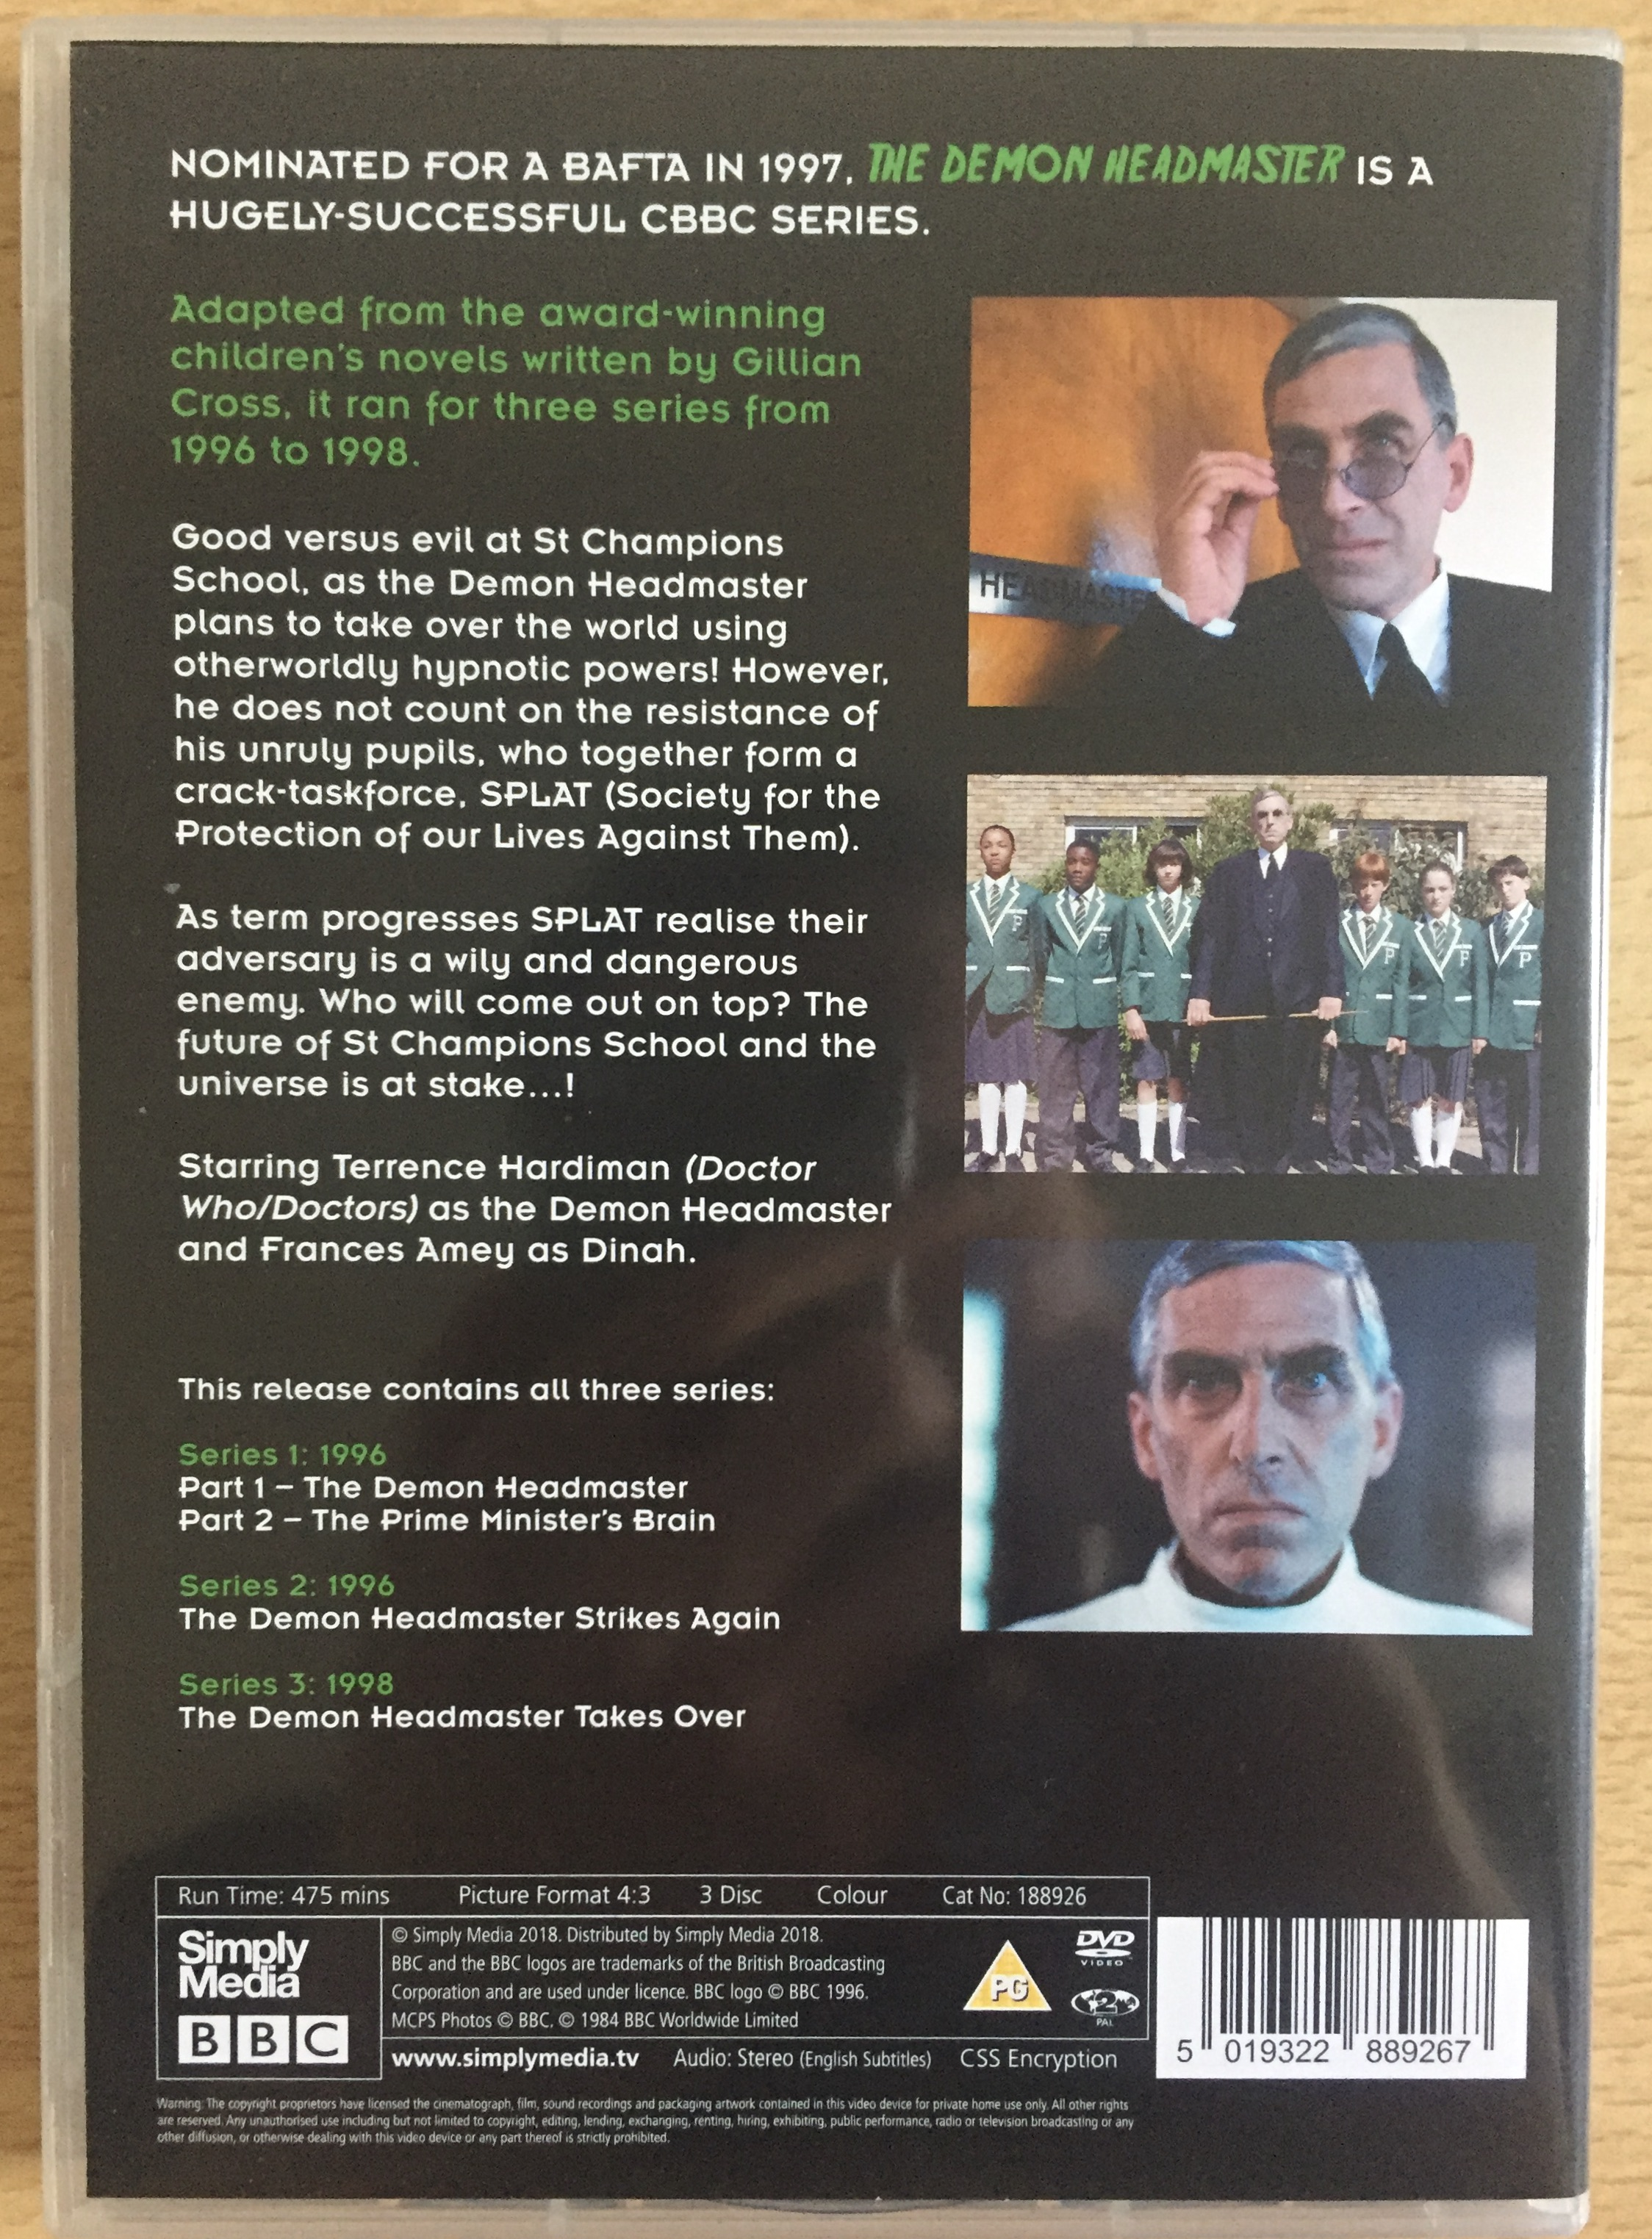 Back cover of the DVD for The Demon Headmaster. Alongside the text are 3 photos from the show featuring the title character, one of him looking over his glasses, one standing in front of a group of his pupils, and one a close-up of him staring straight ahead.